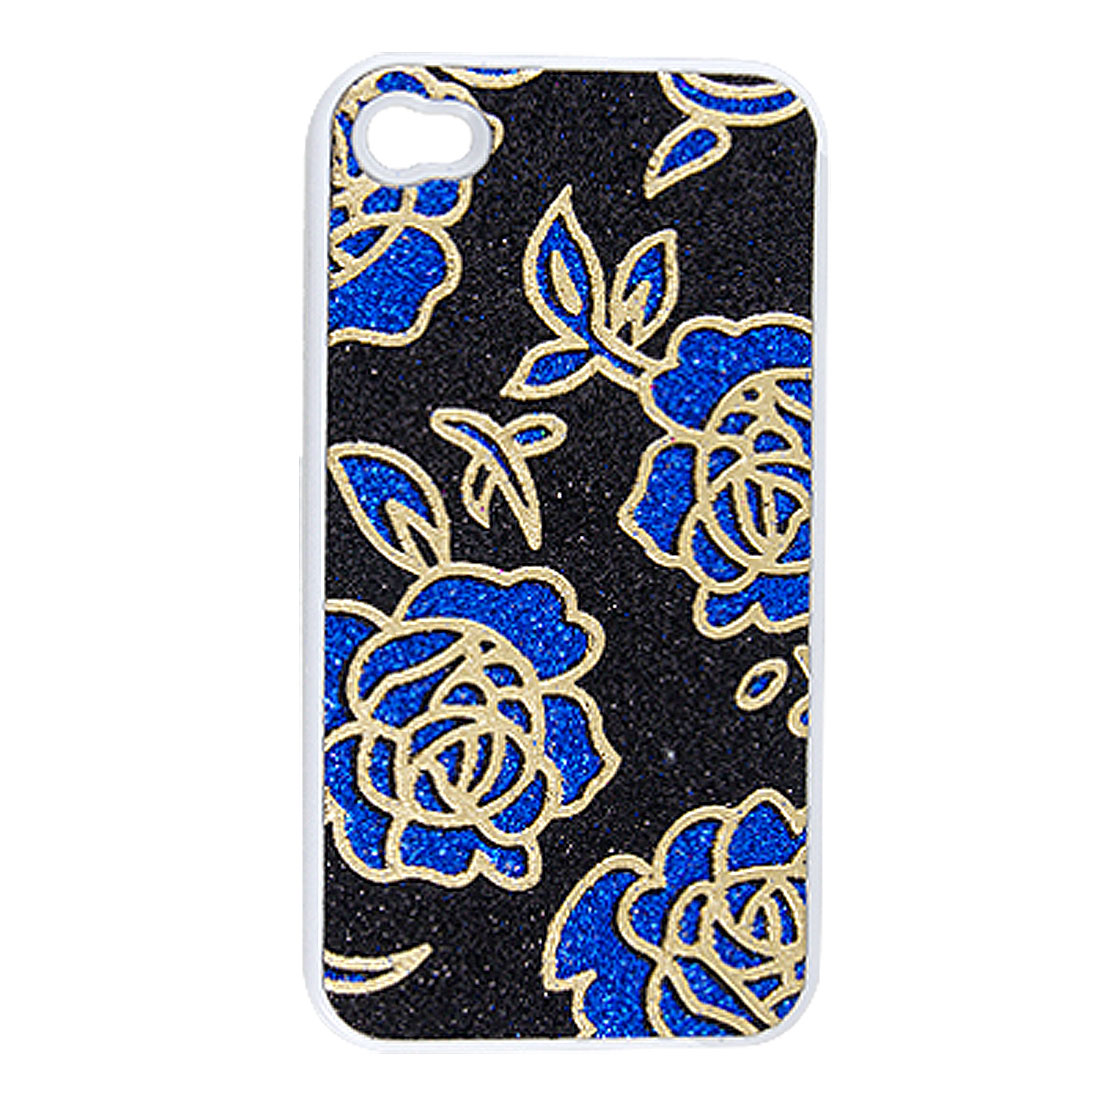 Blue Gold Tone Black Shining Powder Plastic Case for iPhone 4 4G 4S